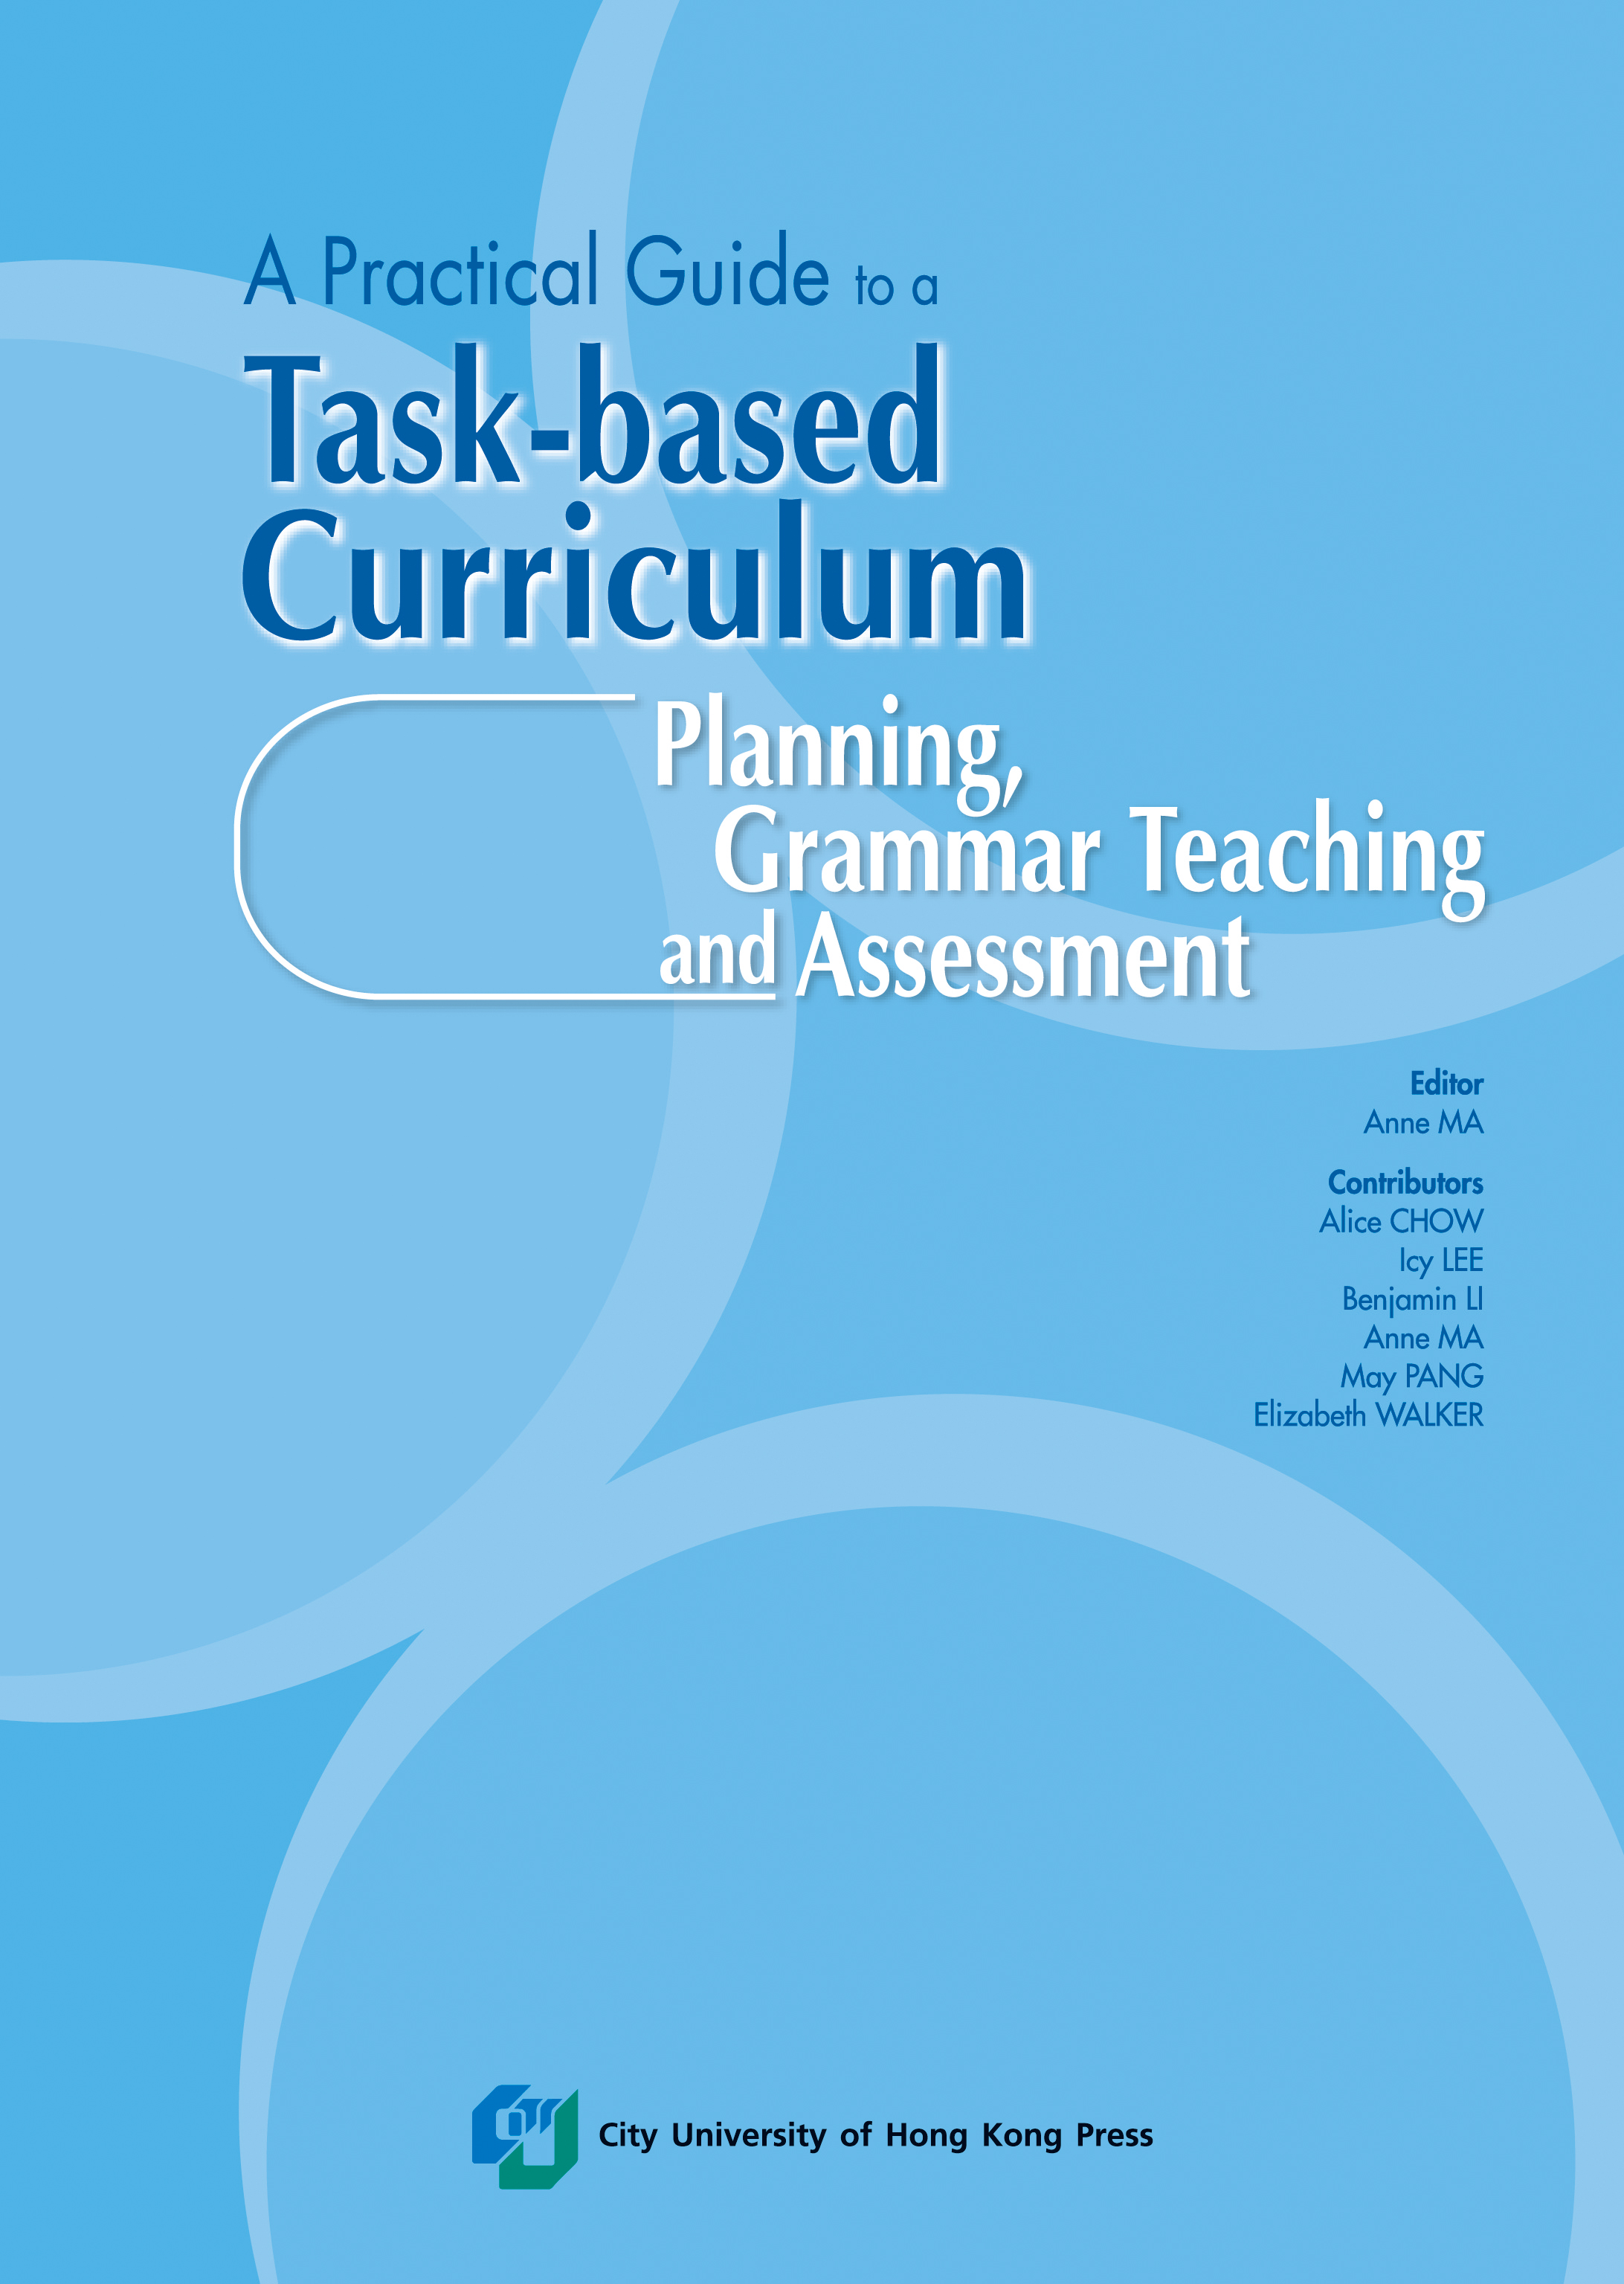 A Practical Guide to a Task-based Curriculum: Planning, Grammar Teaching and Assessment